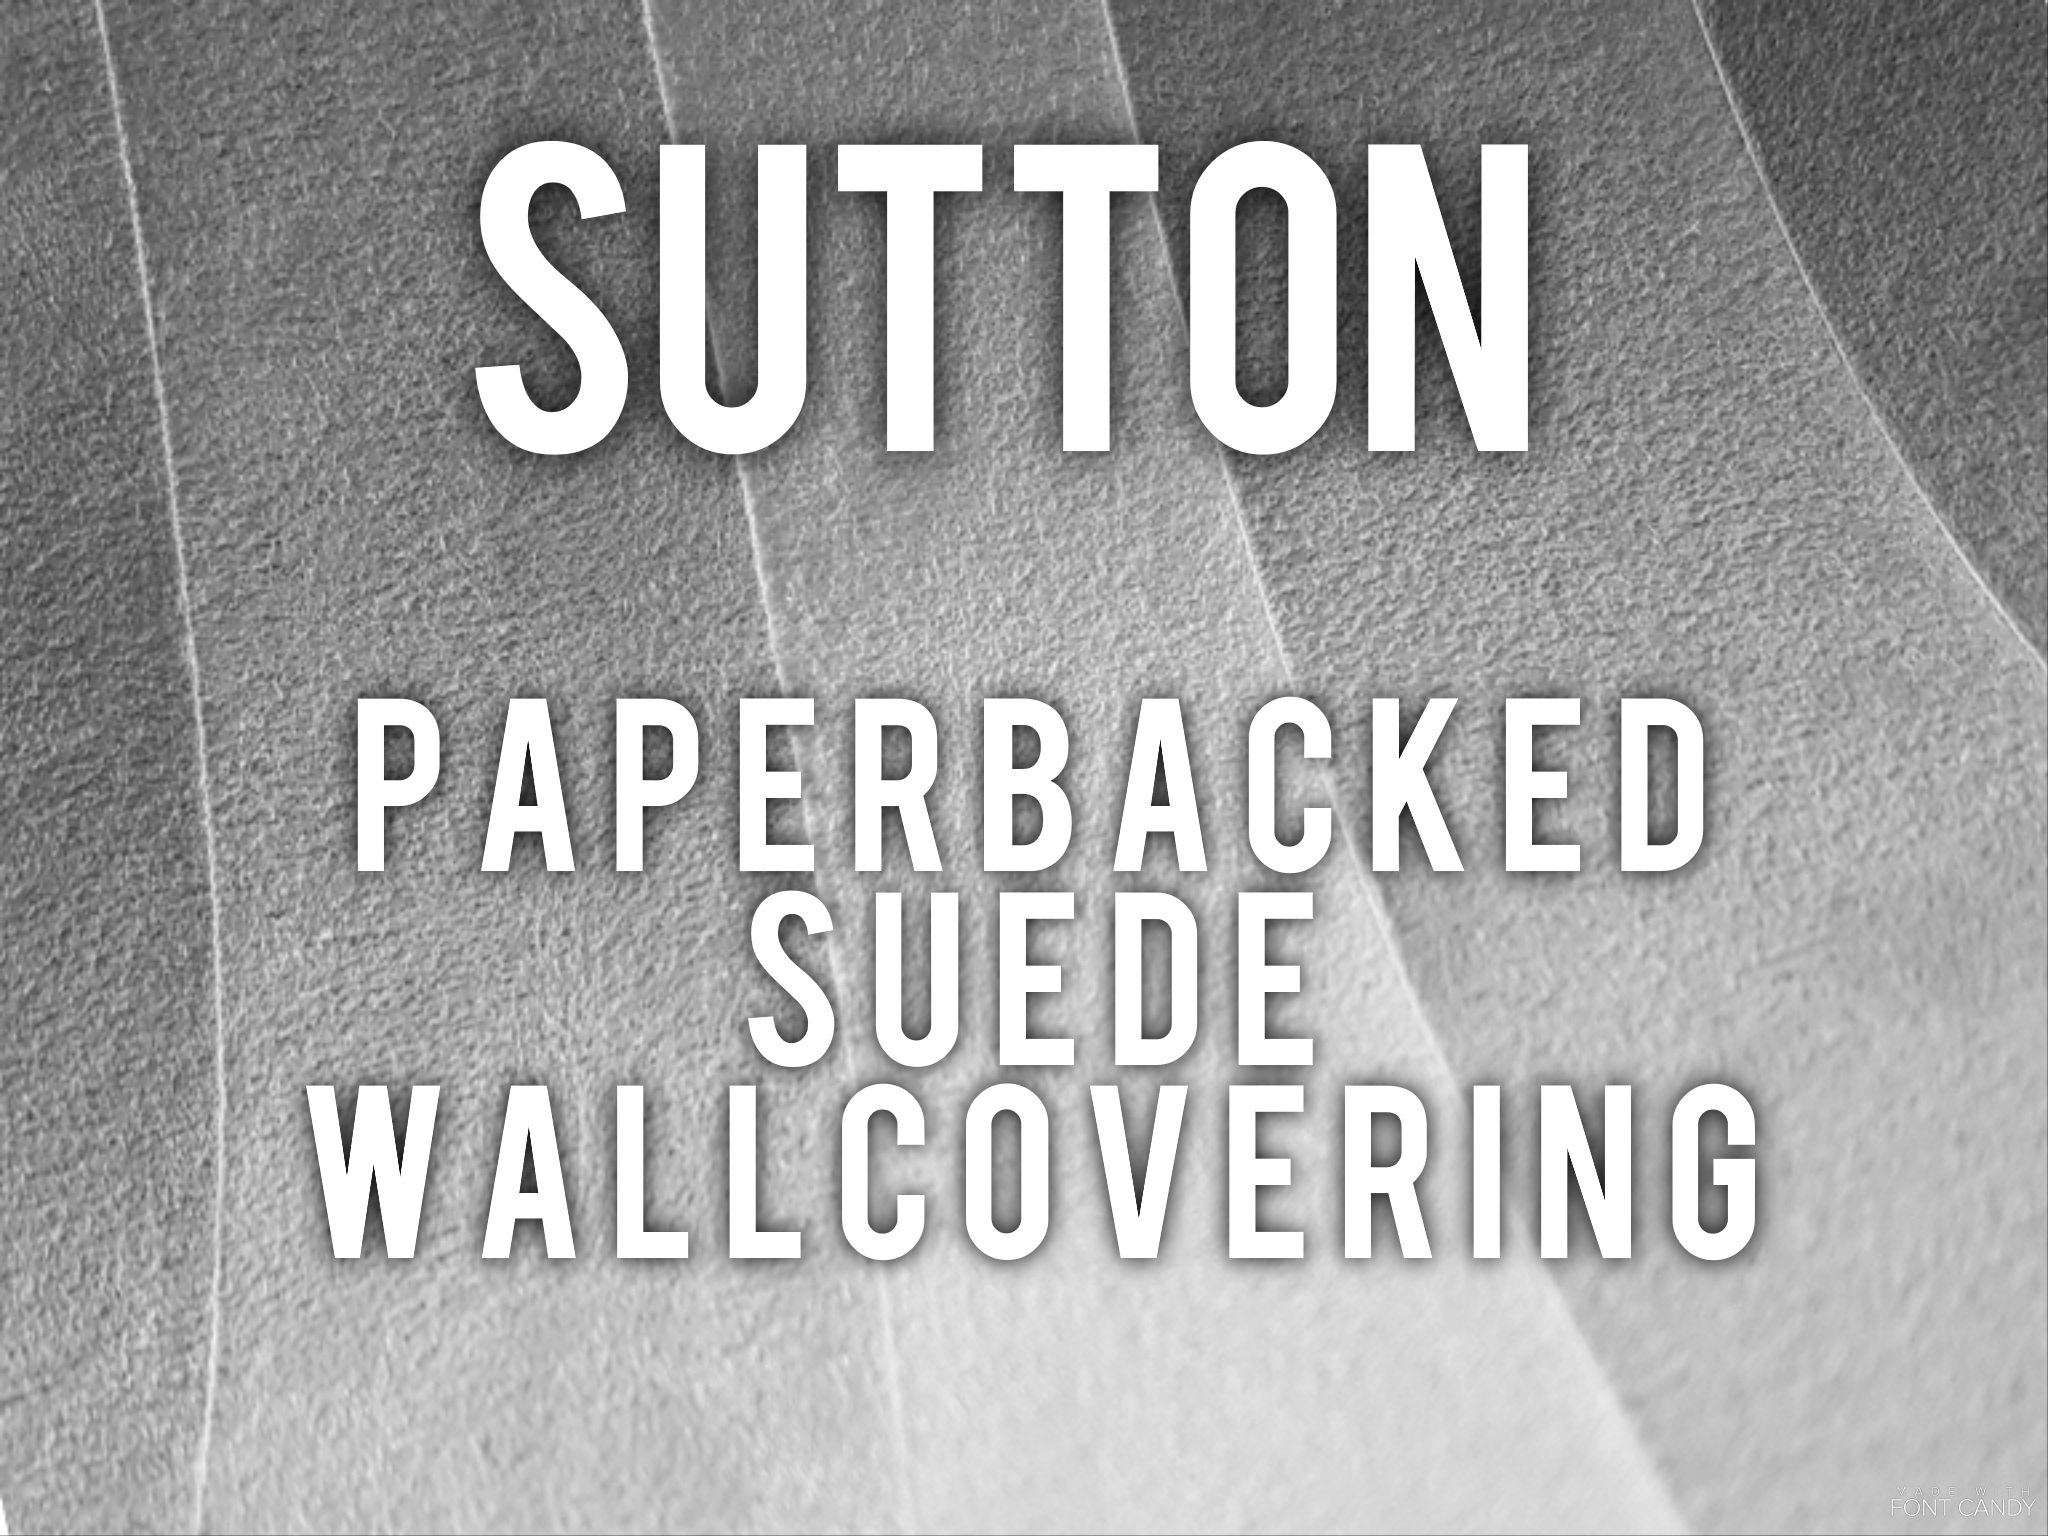 Sutton - Paperbacked suede wallcovering